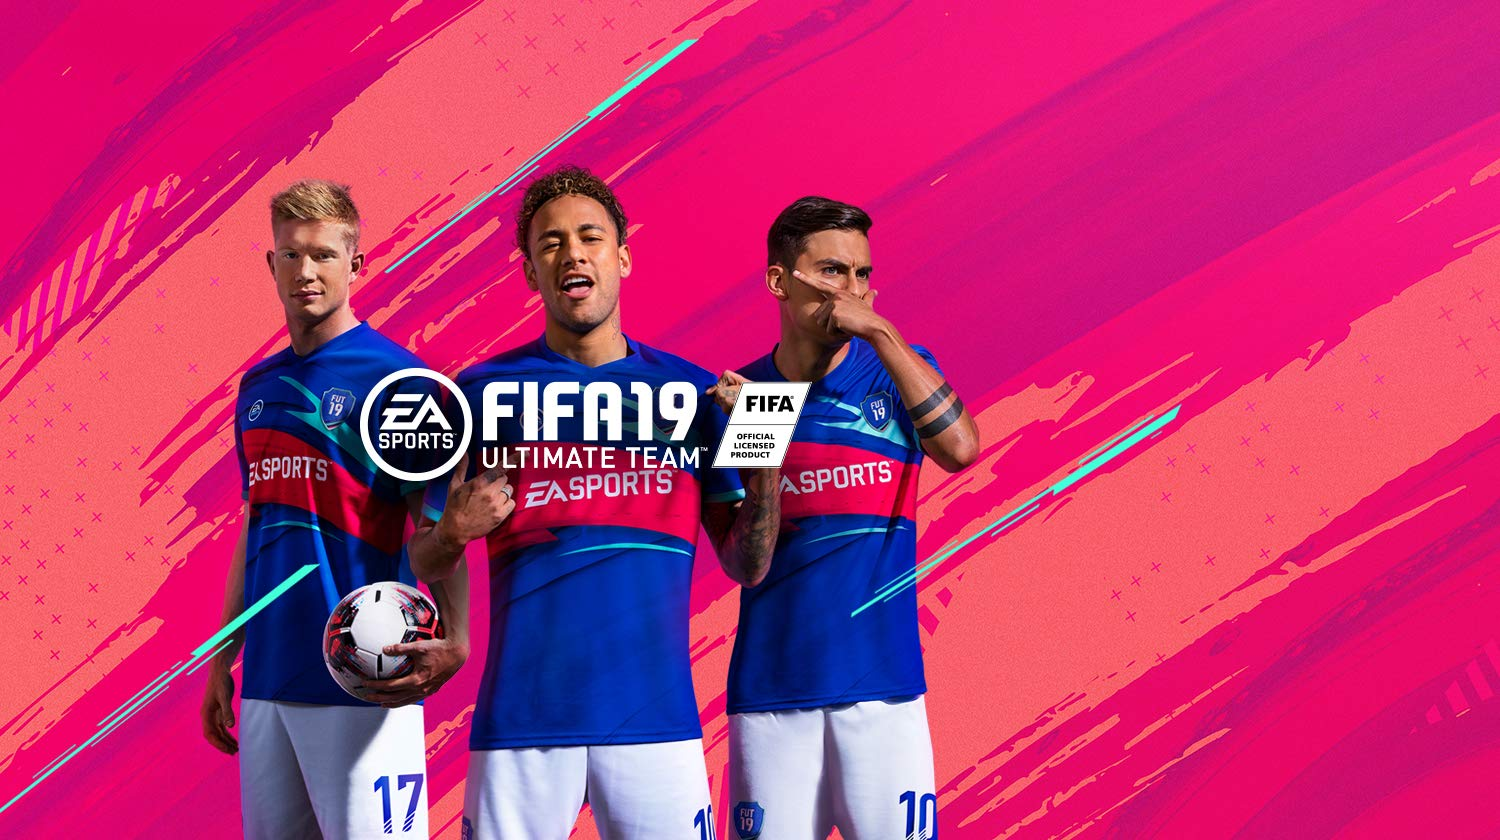 FIFA 19: ULTIMATE TEAM FIFA POINTS 12000 - Xbox One [Digital Code] by Electronic Arts (Image #2)